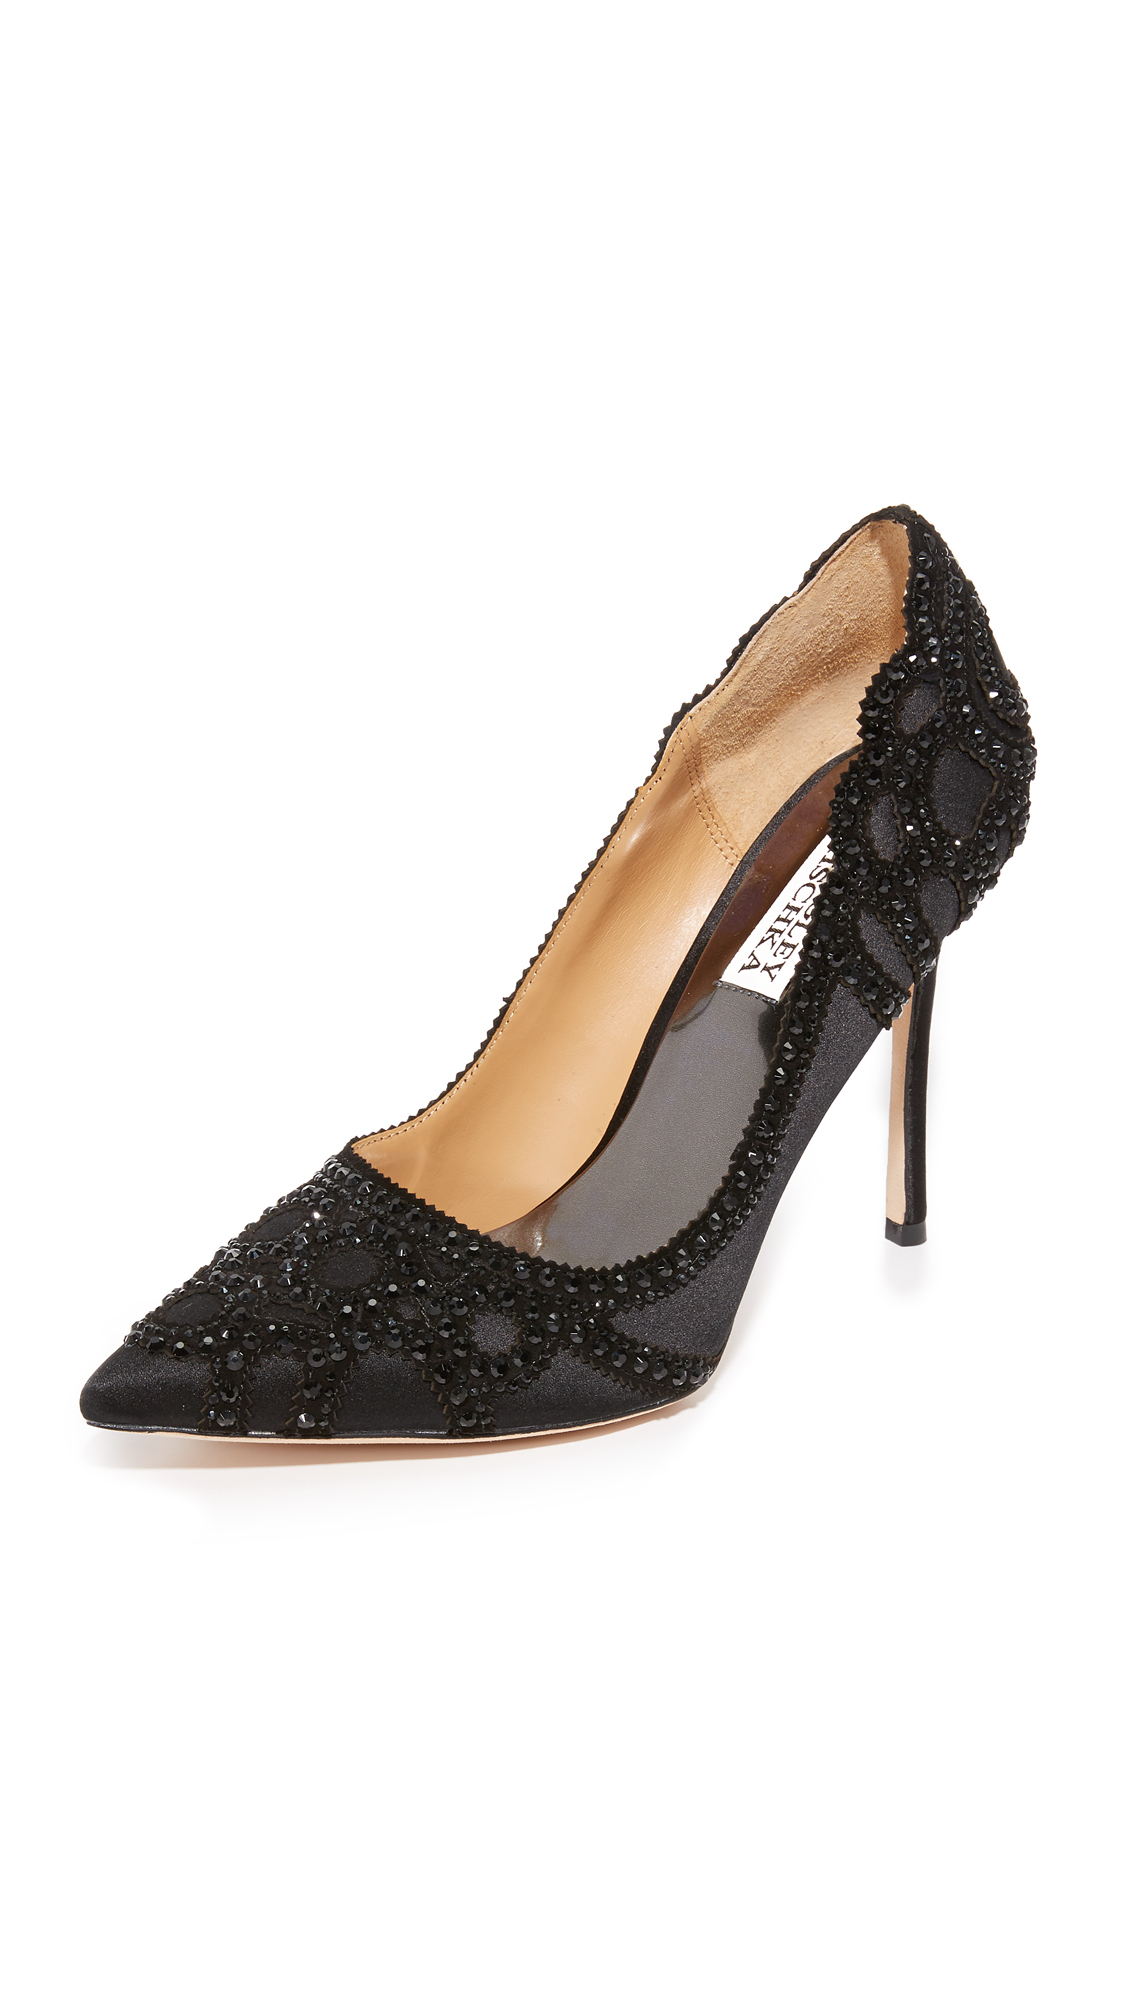 badgley mischka female badgley mischka rouge pumps black